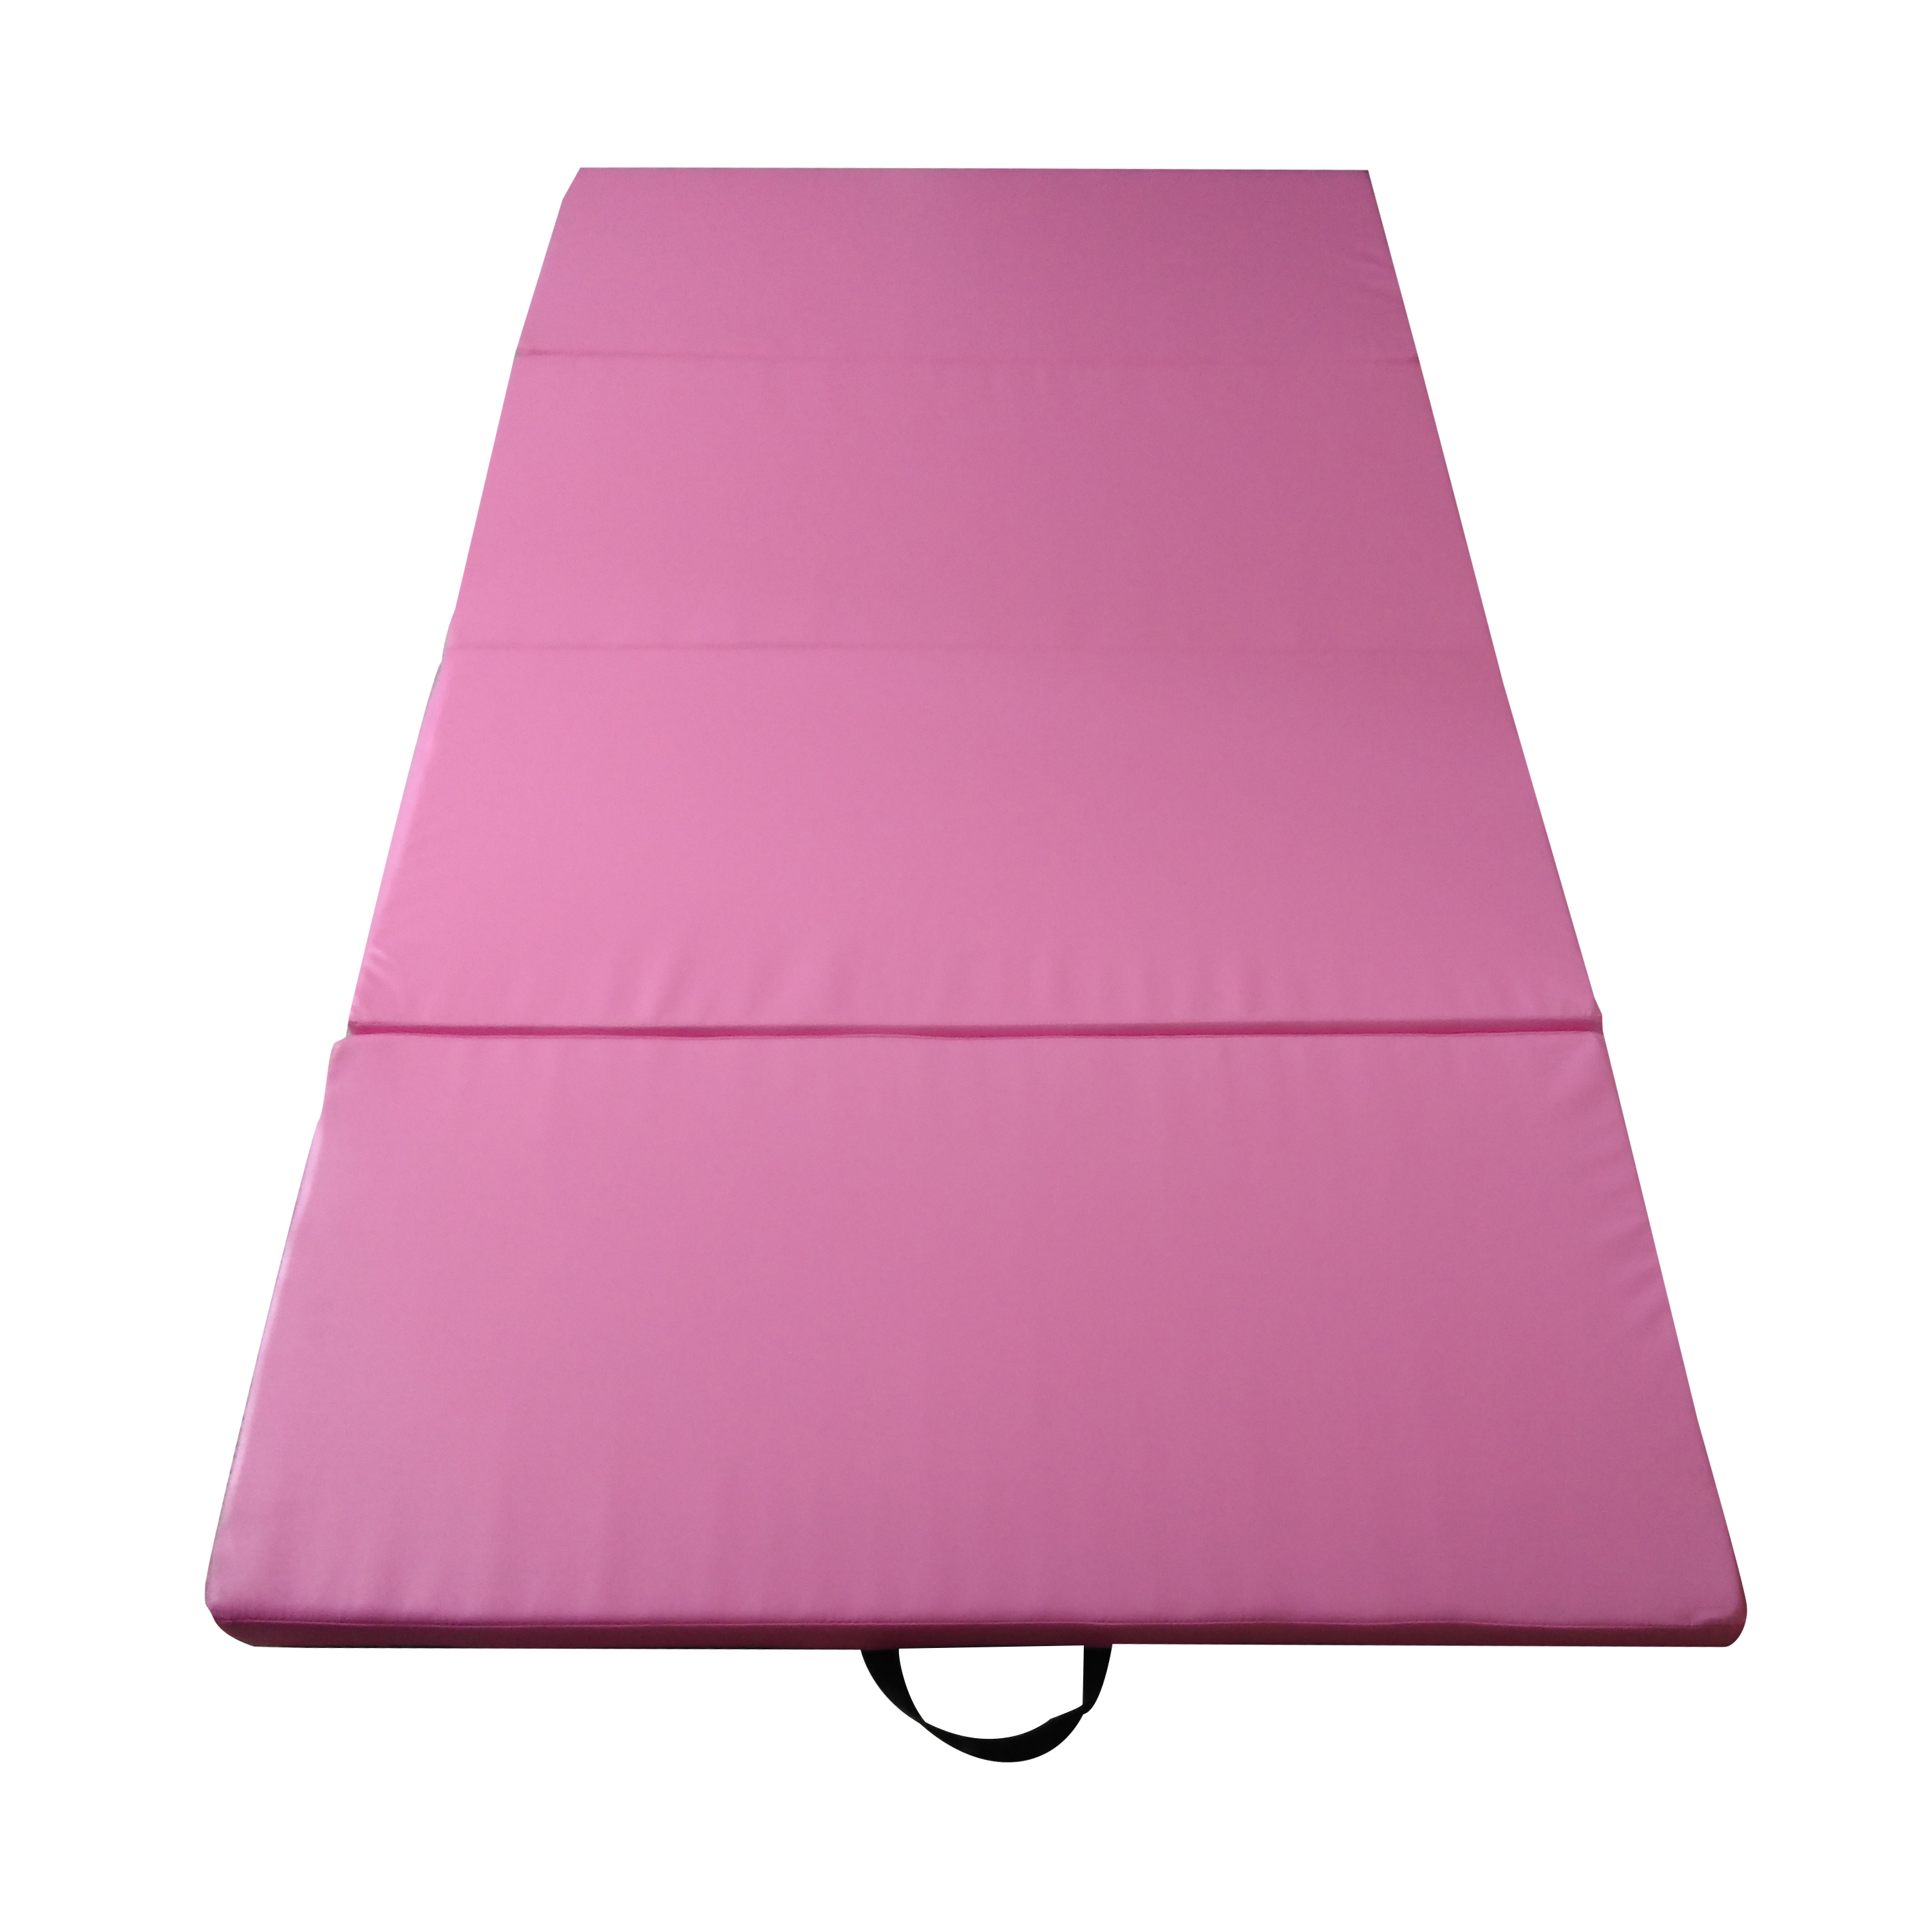 cheap stretching itm blue mat mats exercise best products folding choice yoga gymnastics aerobics gym